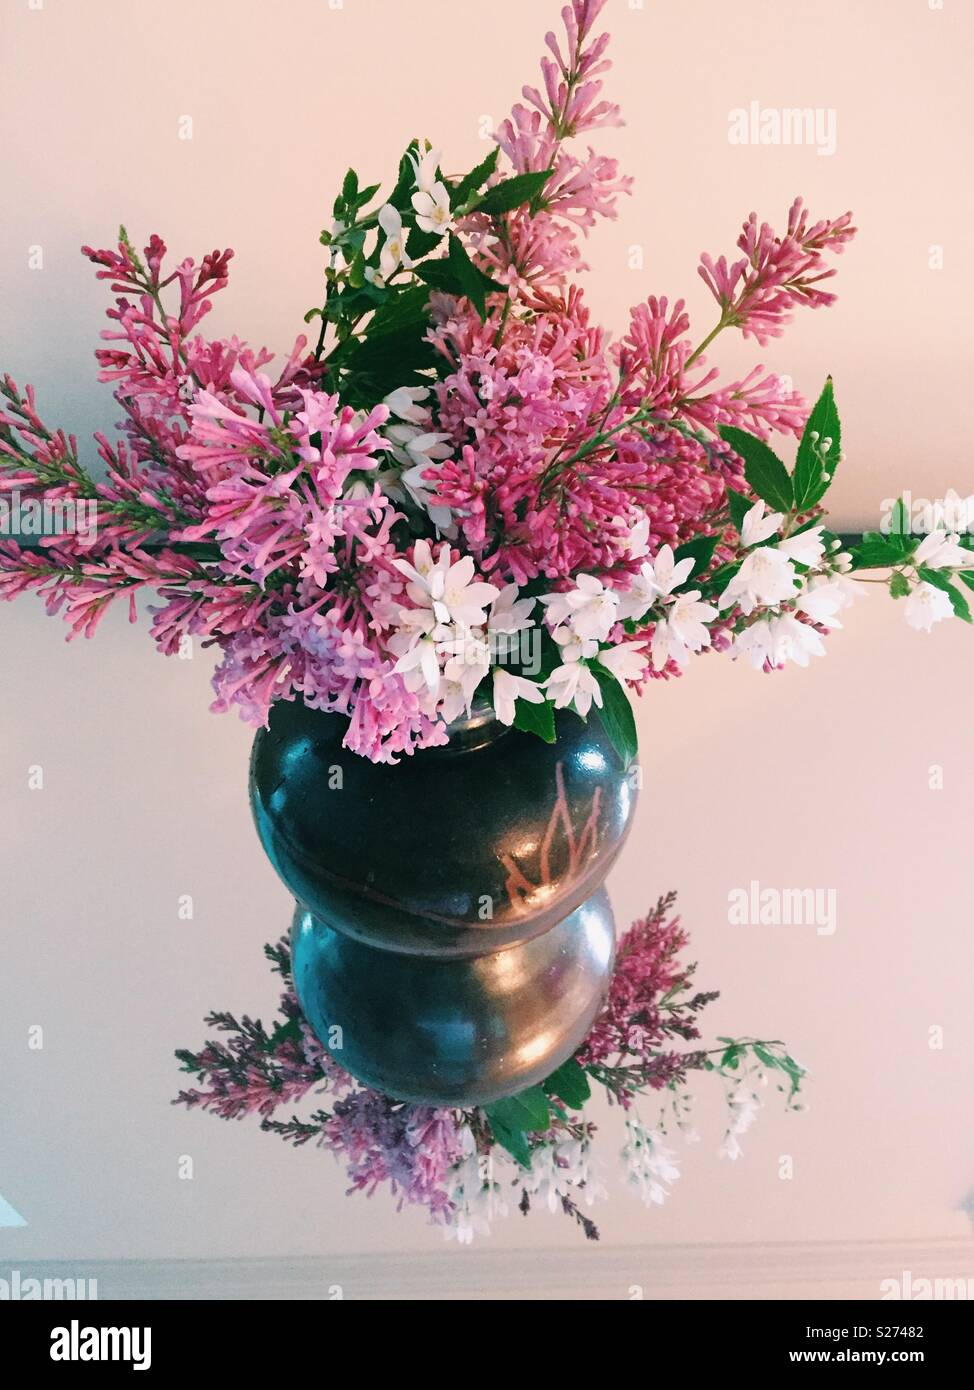 Spring flowers in pottery vase. - Stock Image